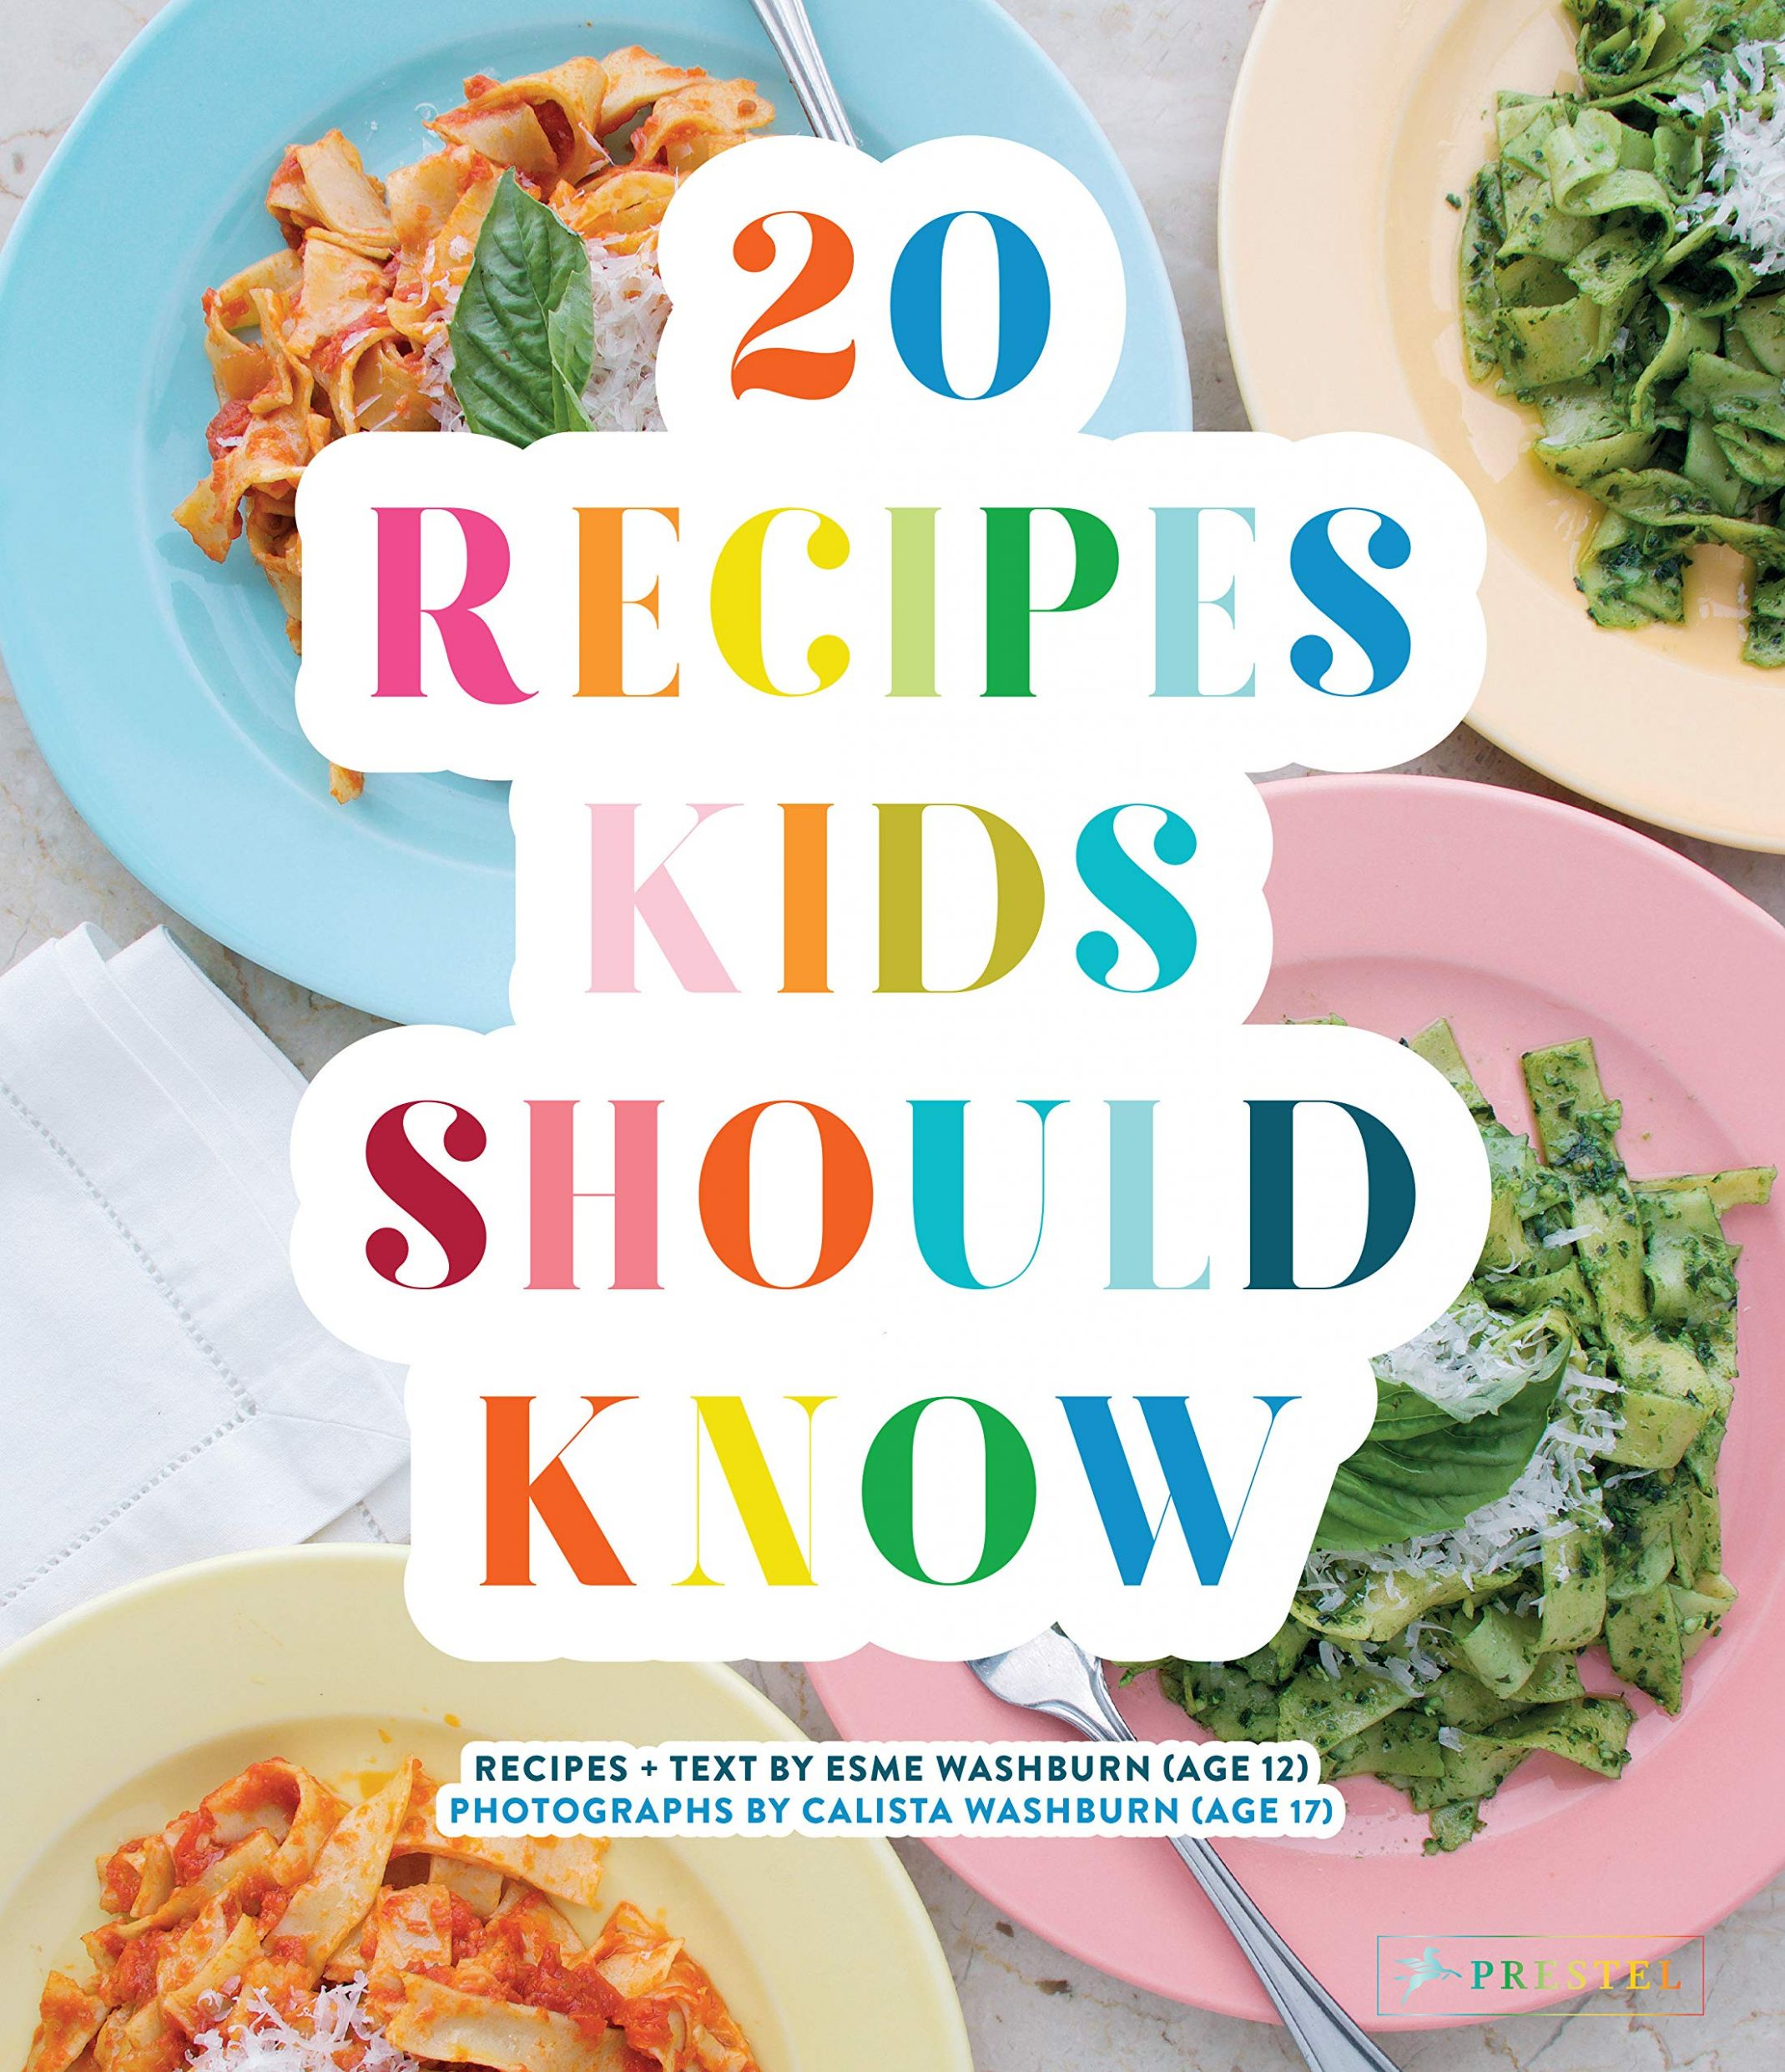 Amazon.com: 9 Recipes Kids Should Know (9): Esme ..